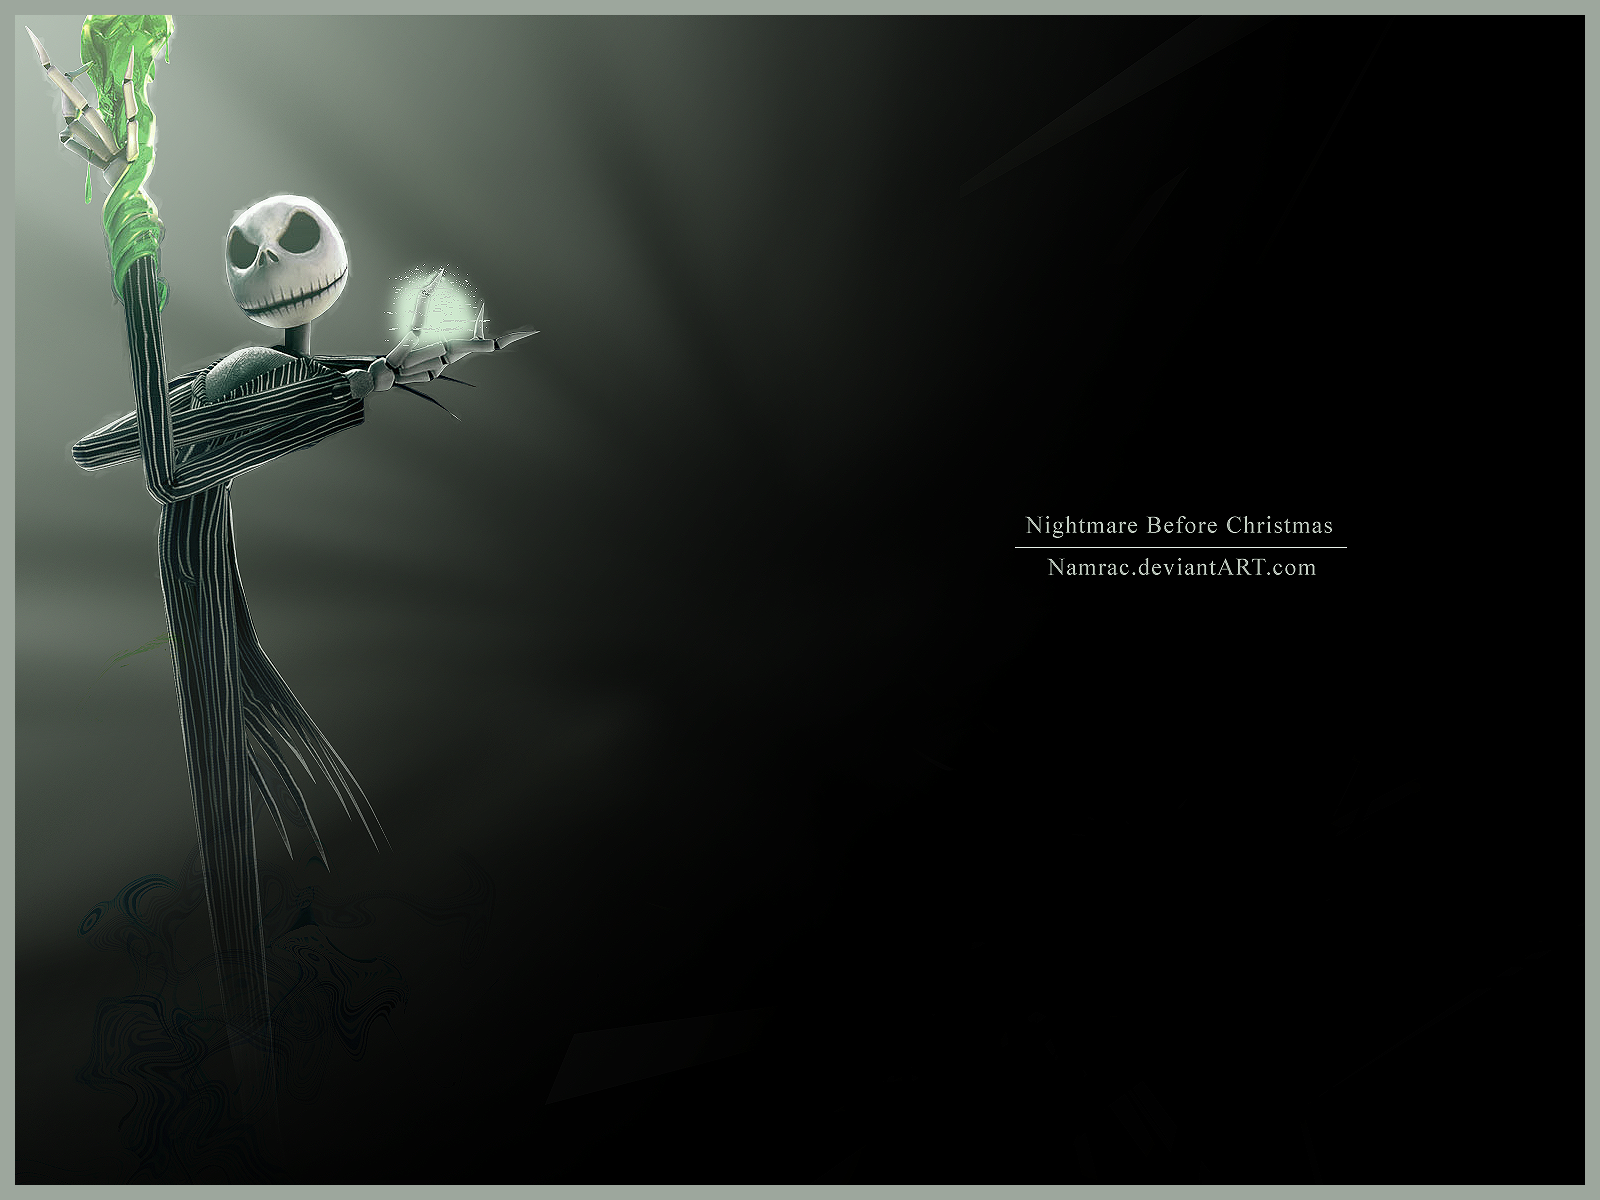 Nightmare Before Christmas wallpaper | 1600x1200 | 61778 | WallpaperUP